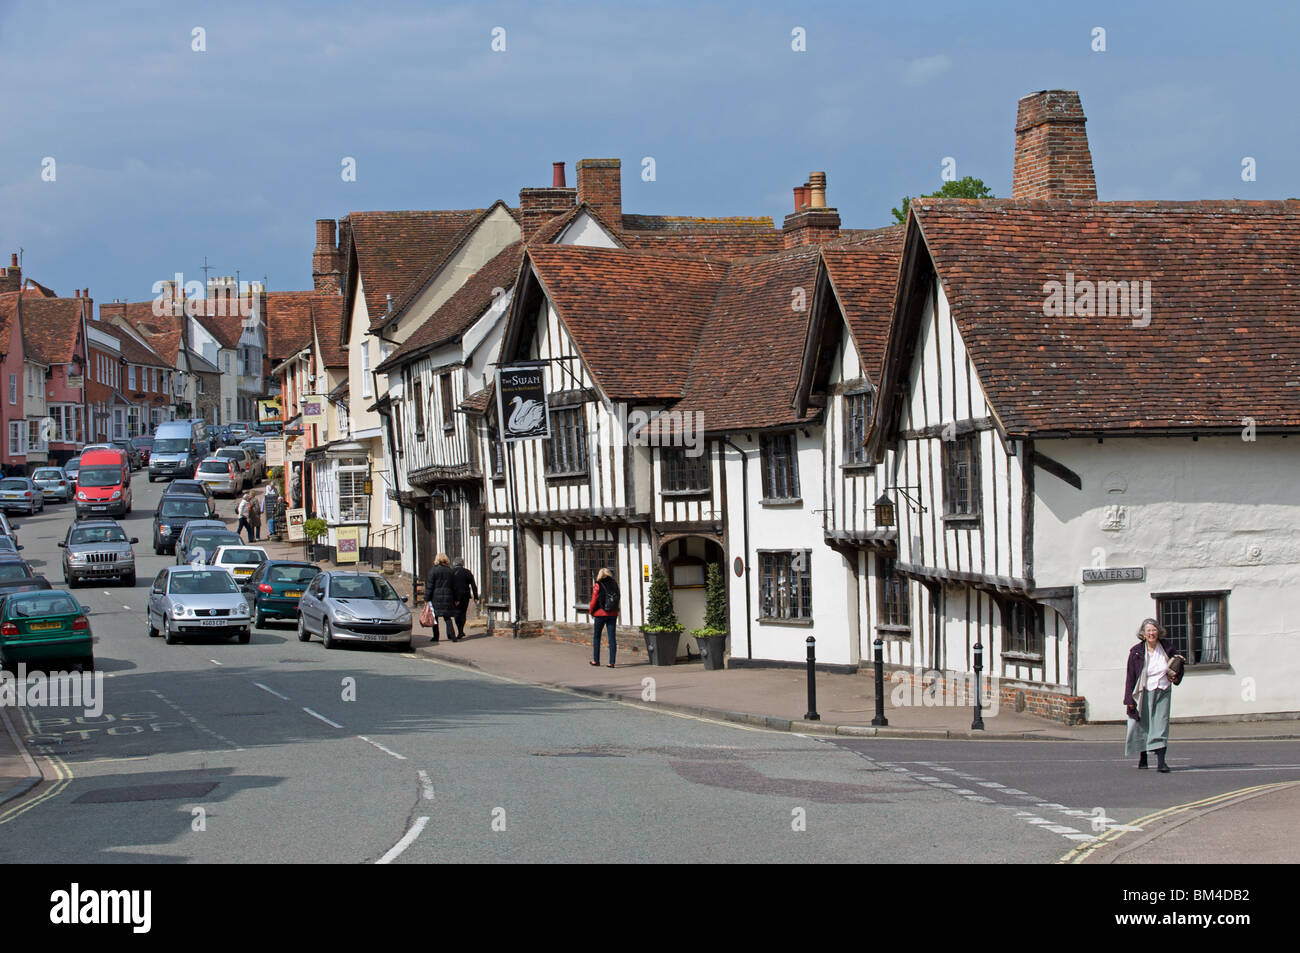 The Swan hotel and high street, Lavenham, Suffolk, UK. Stock Photo